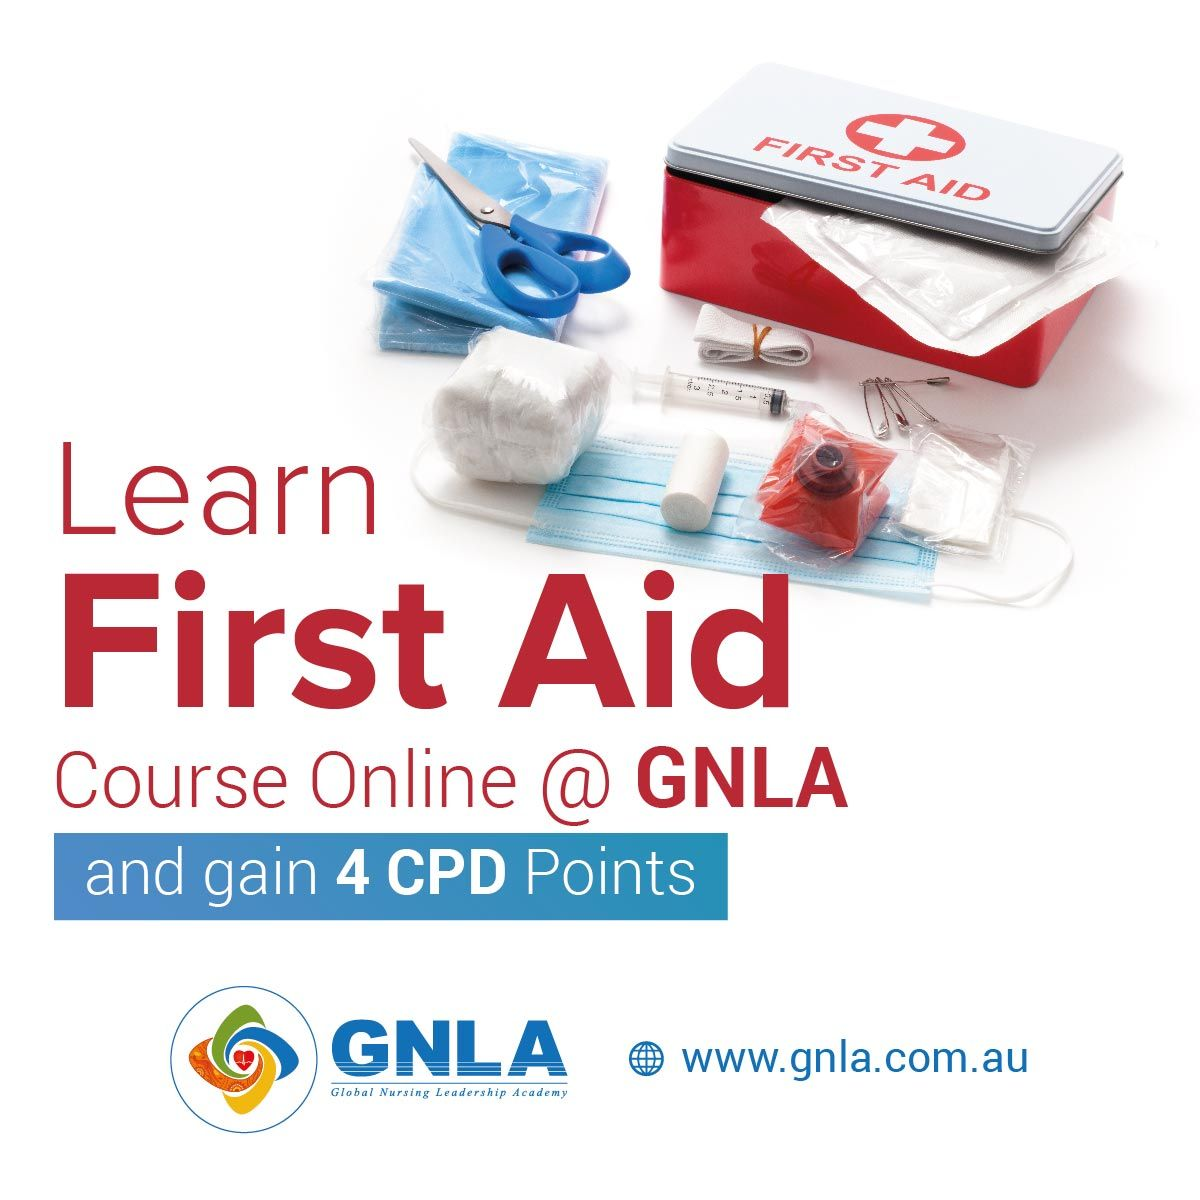 Study First Aid Course Online @ GNLA And Gain 4 CPD Points